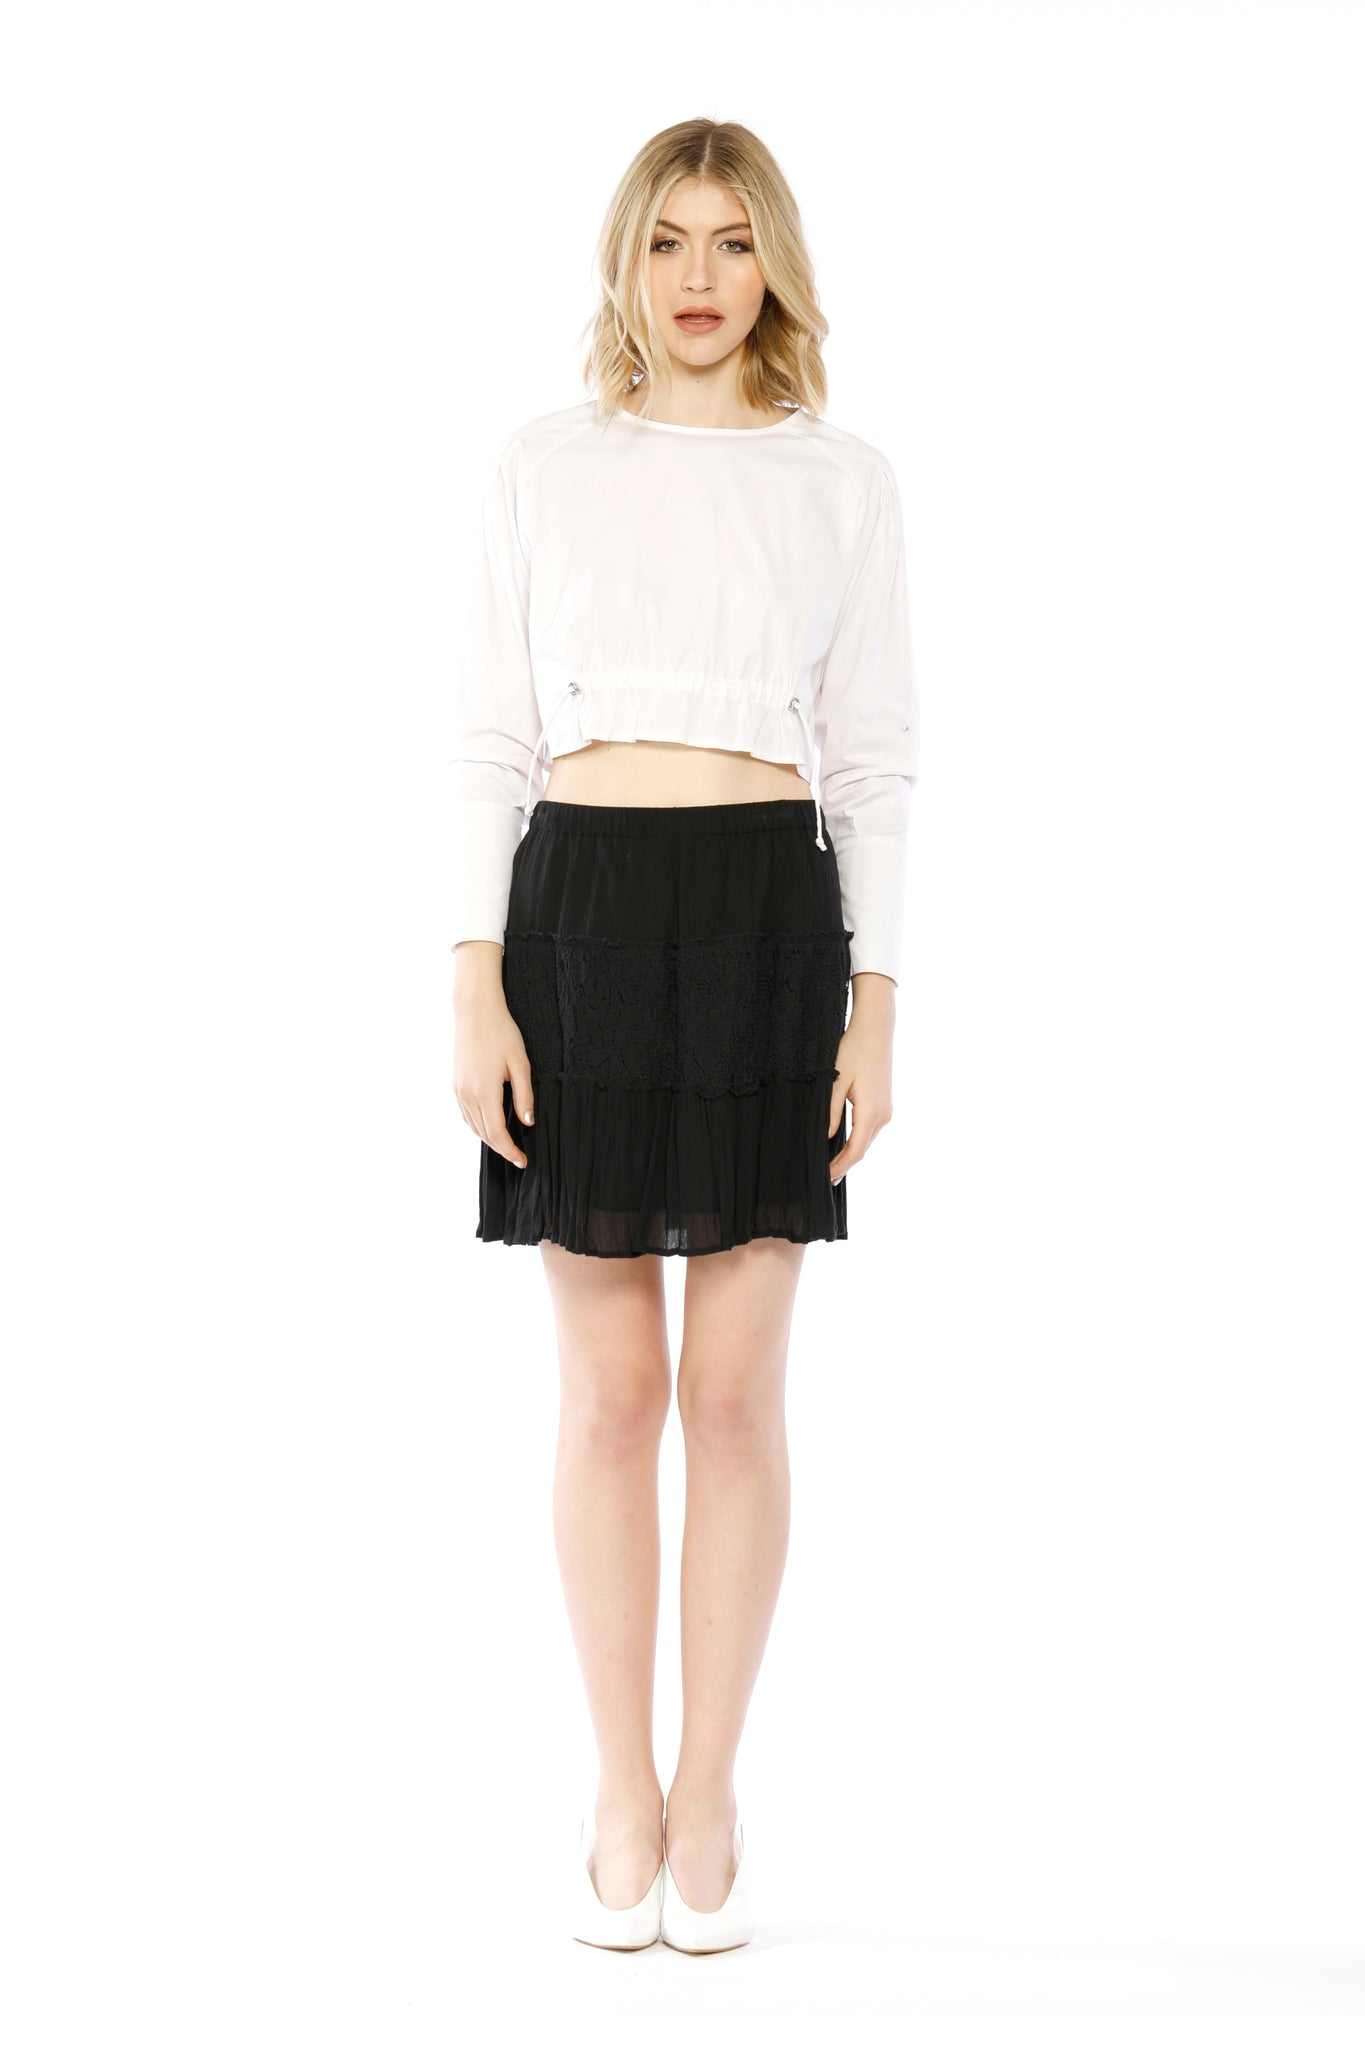 Front view of Fin Skirt, black skirt with layered frills and ruffles. 100% cotton and machine-washable